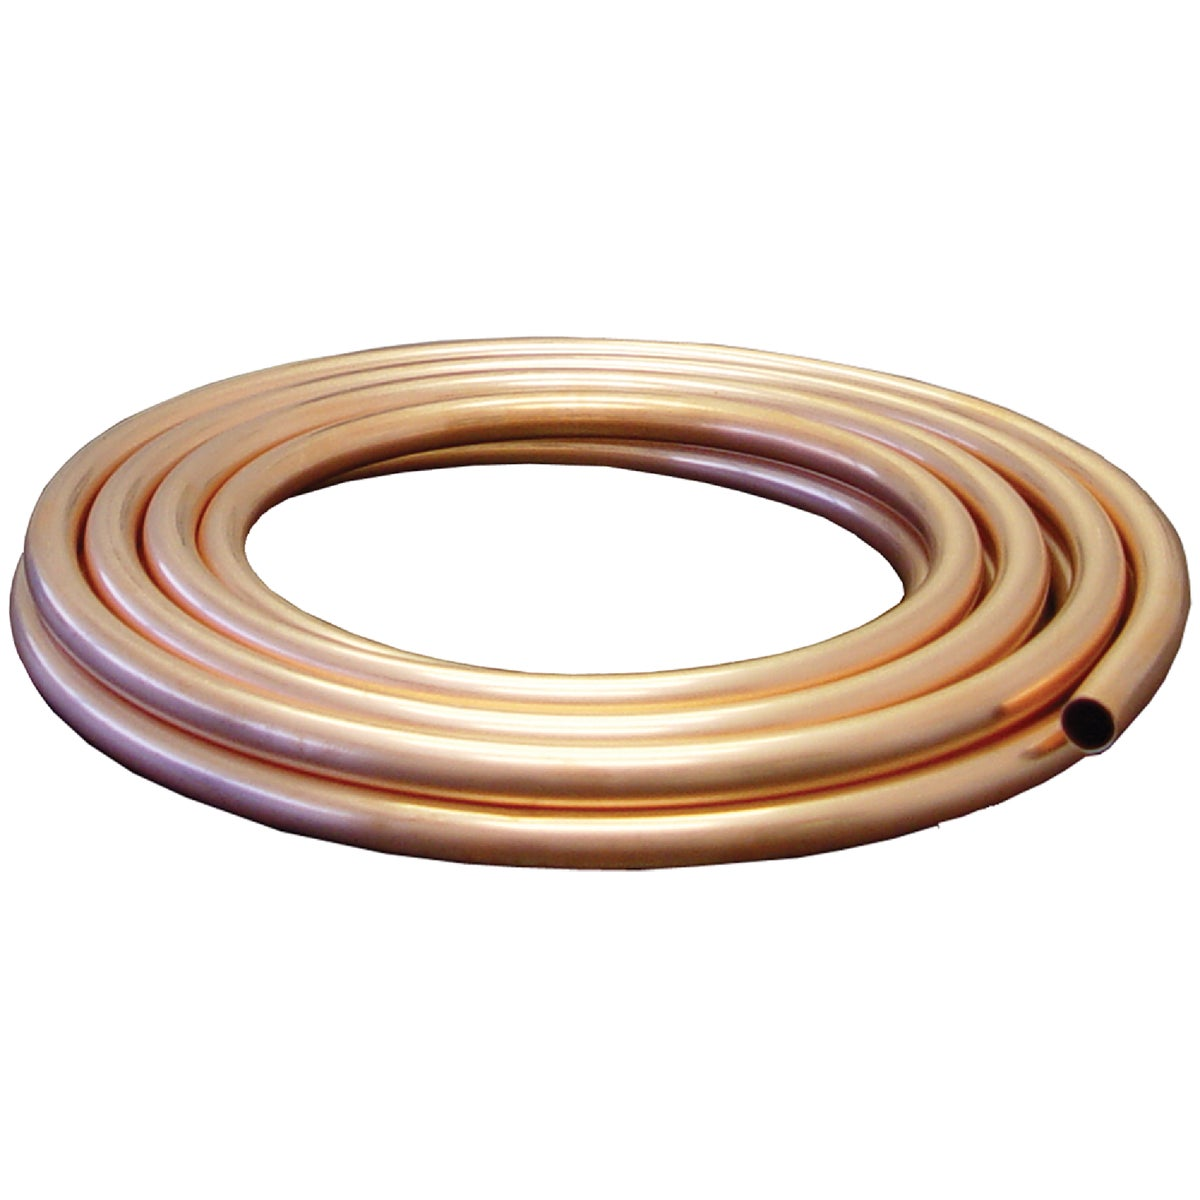 "3/8""ODX25'UG COPPER COIL - UT06025 by Mueller B K"